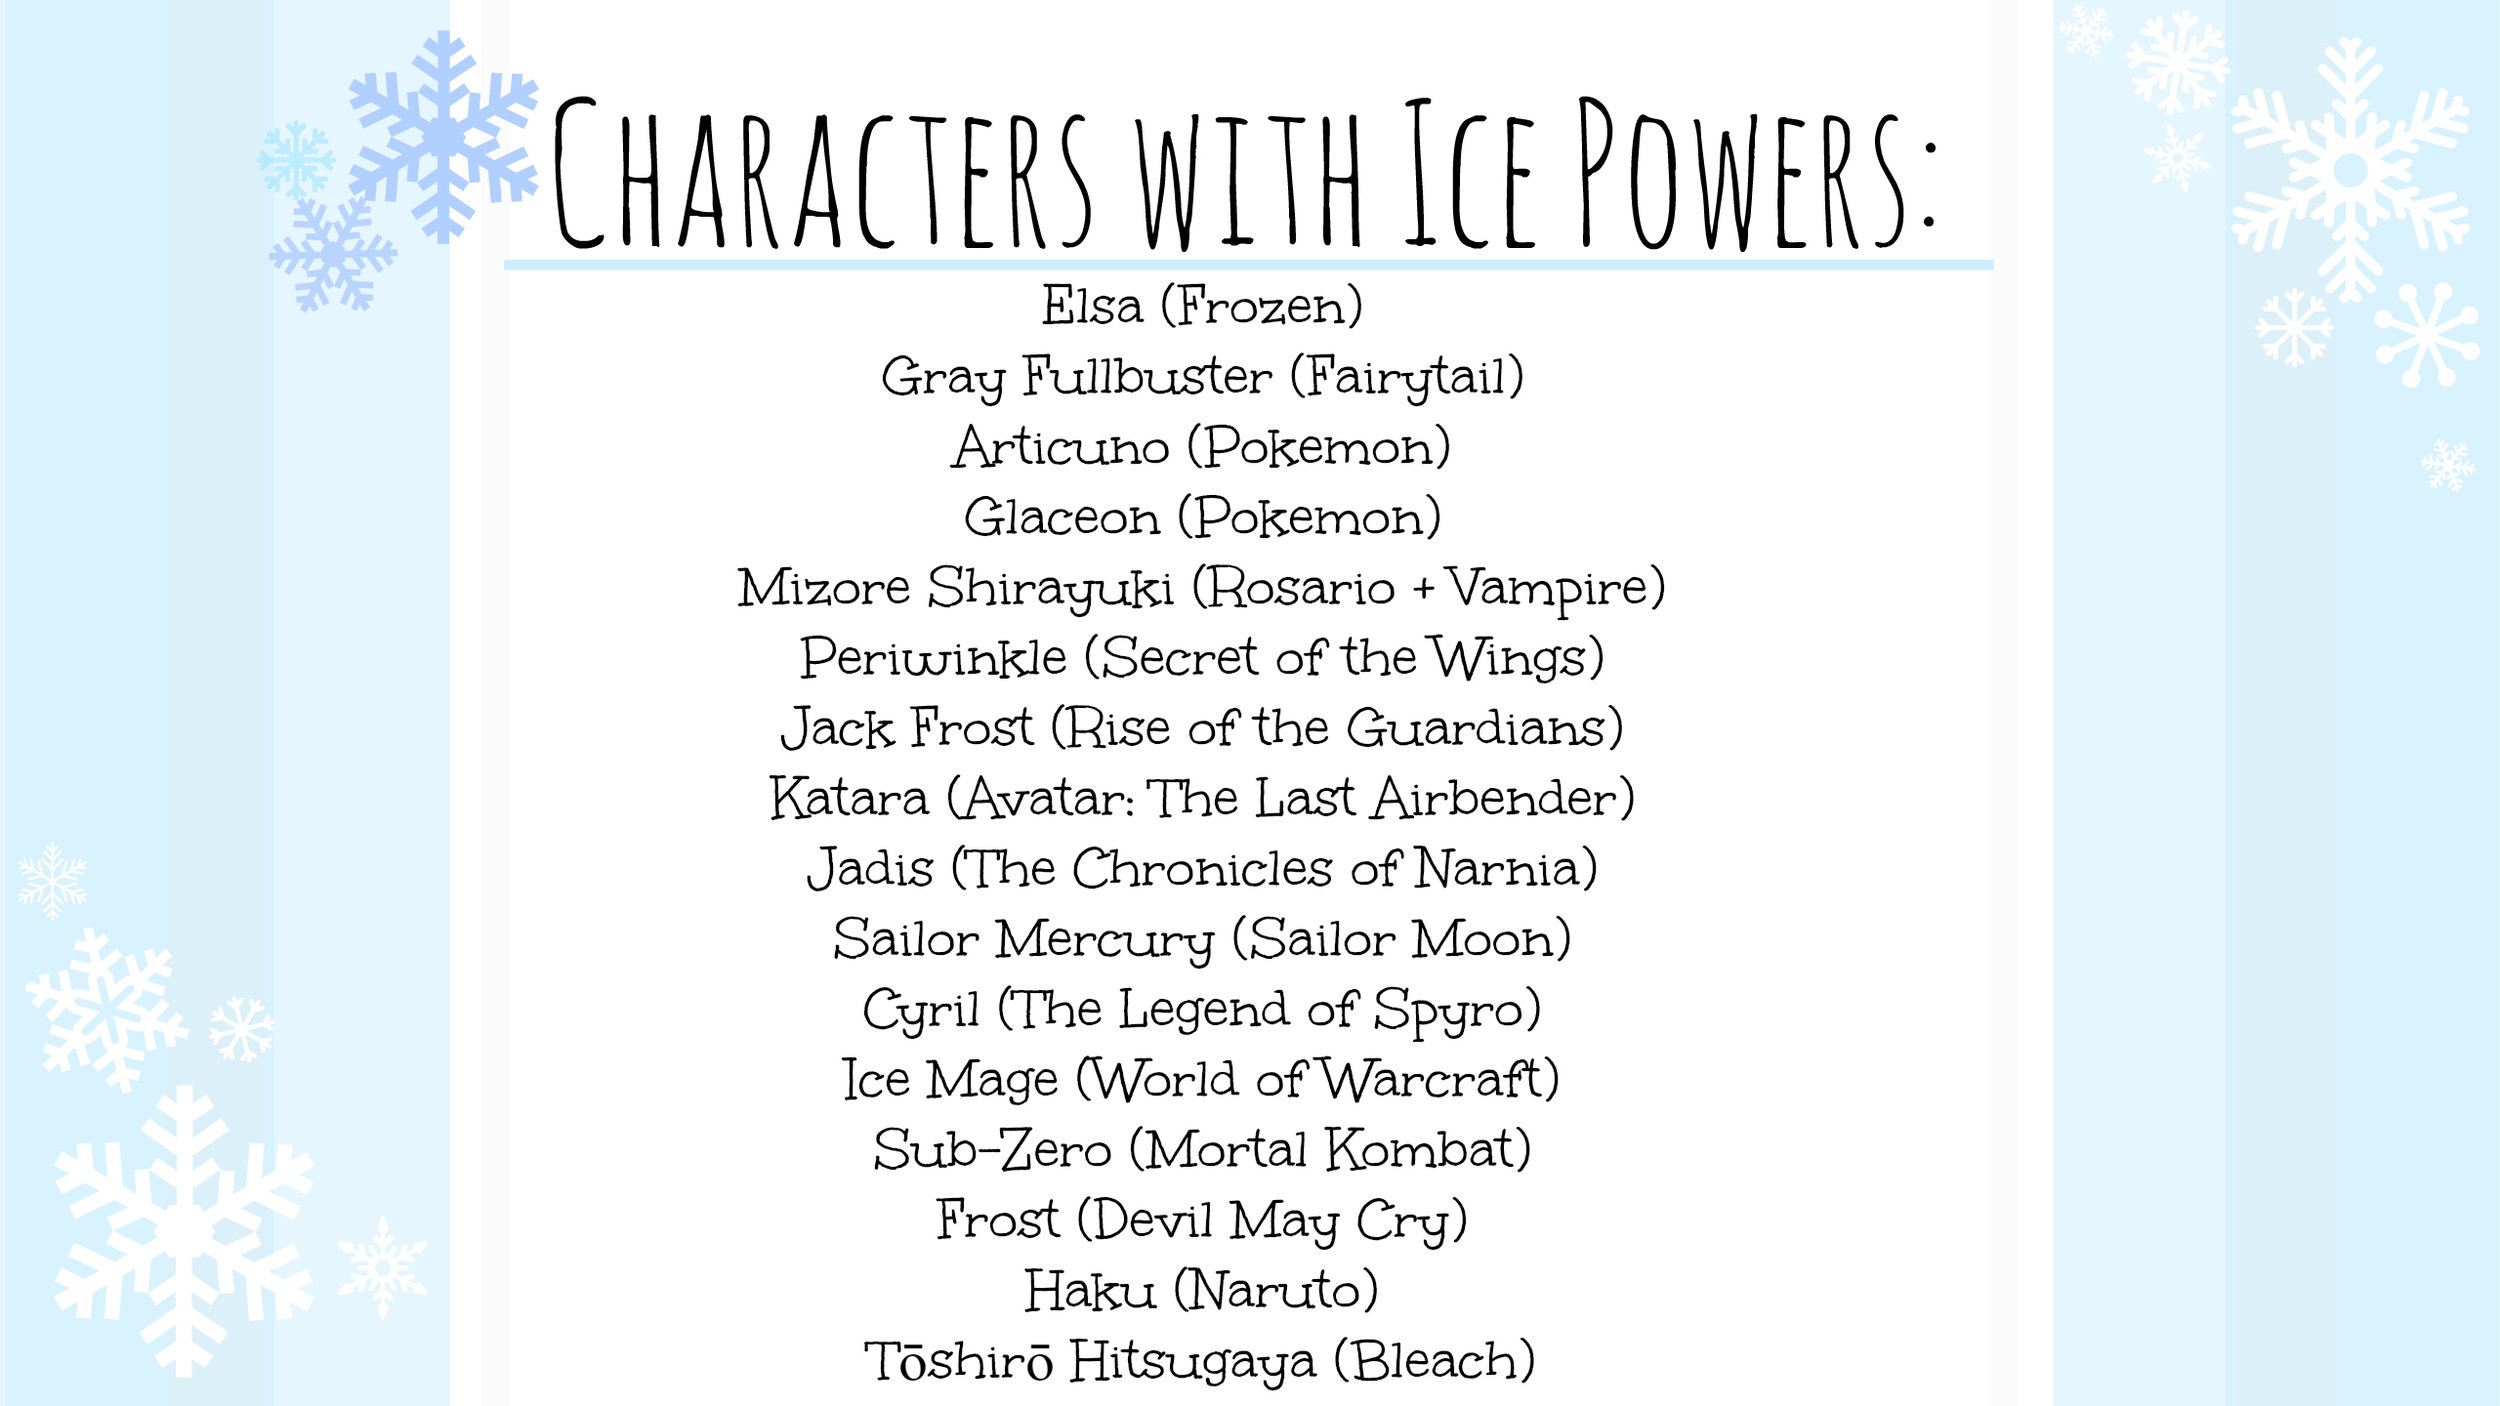 While I know I'm missing a few, here is a list of some characters who have ice powers and control over the Winter Elements.